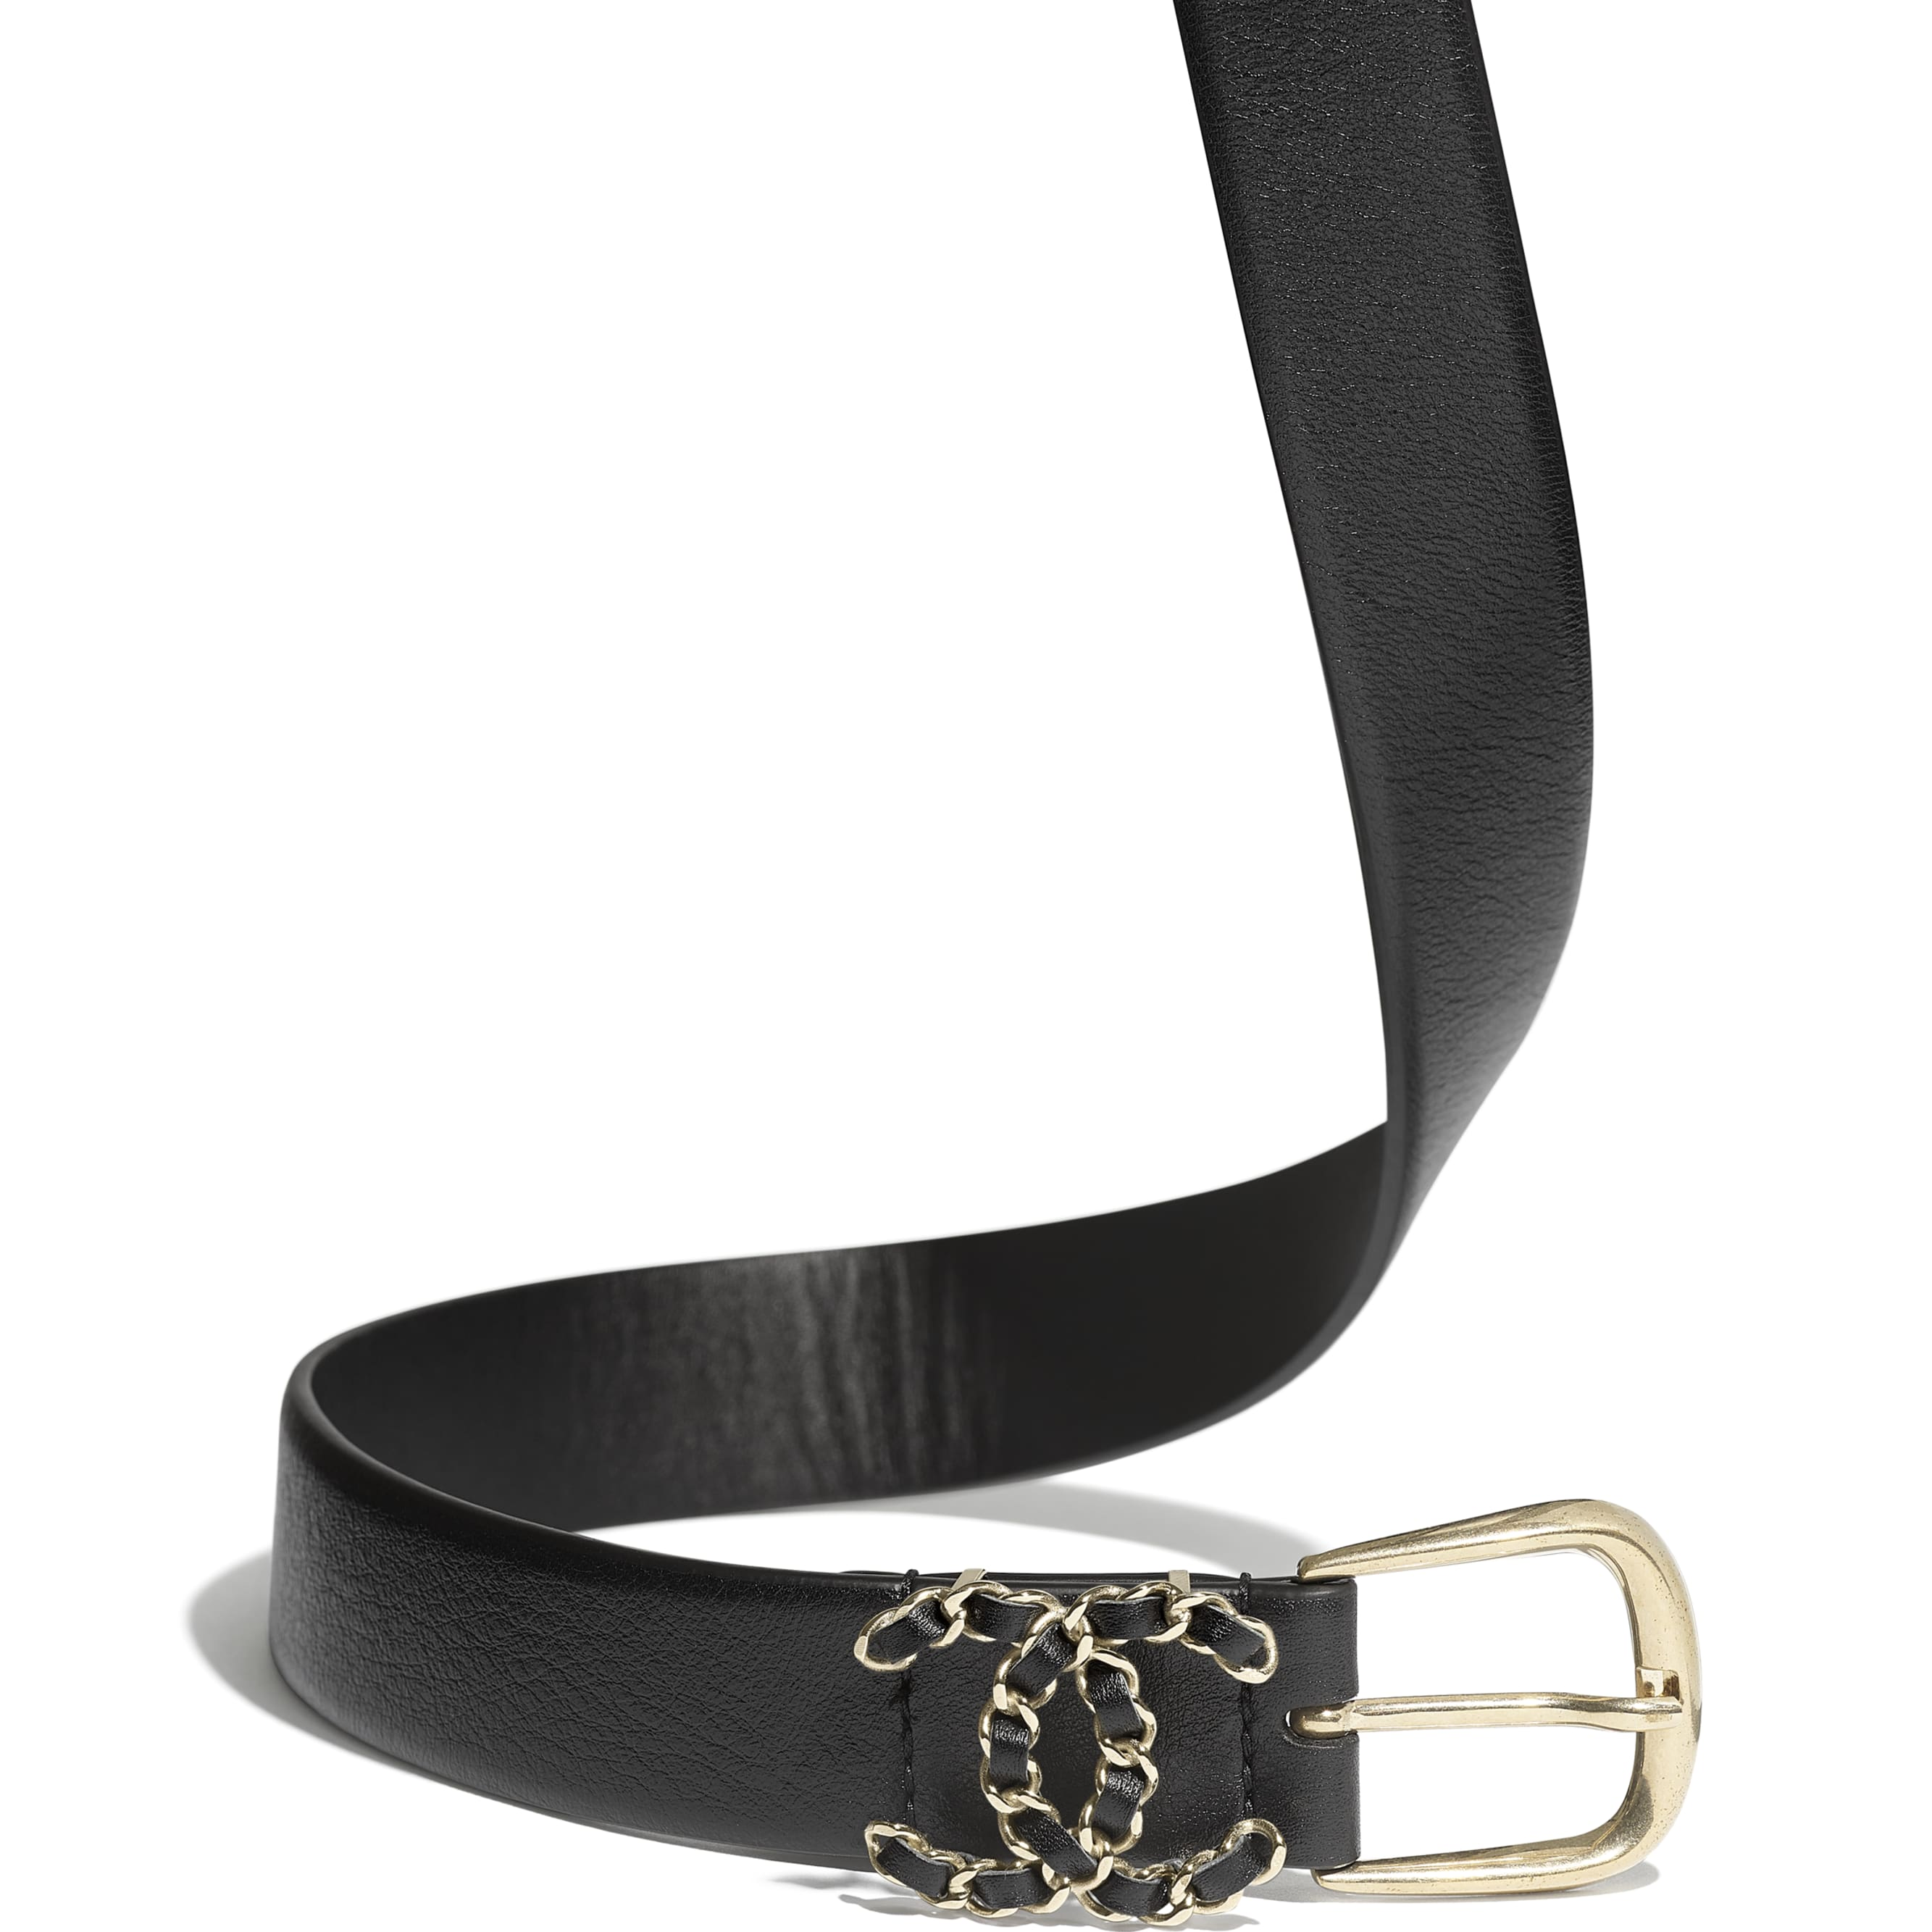 Belt - Black - Calfskin & Gold-Tone Metal - CHANEL - Alternative view - see standard sized version